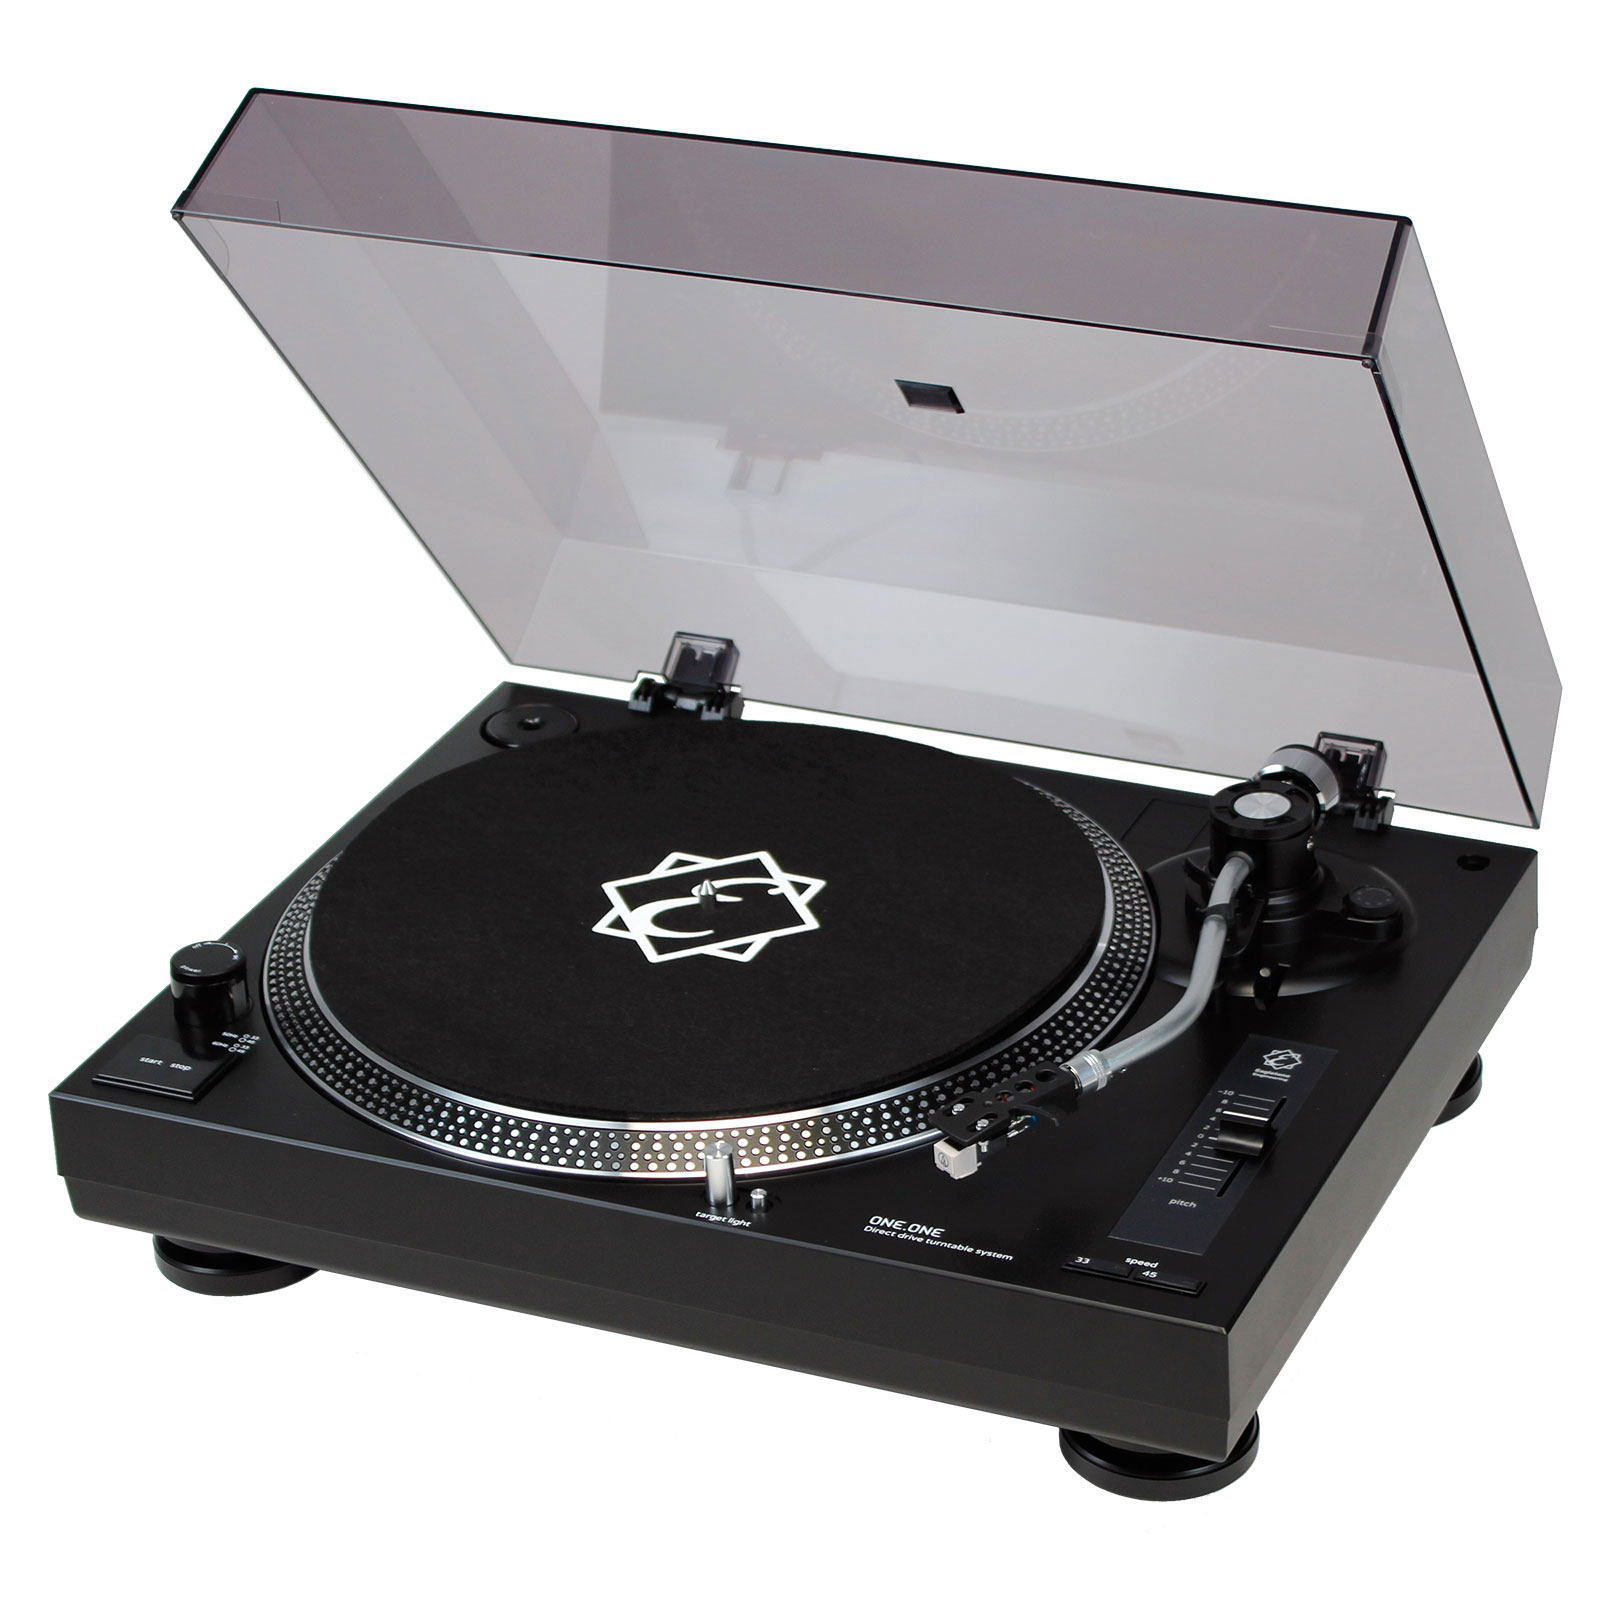 dj tech vinyl usb 10 v2 platine vinyle usb noire mk2 noel. Black Bedroom Furniture Sets. Home Design Ideas